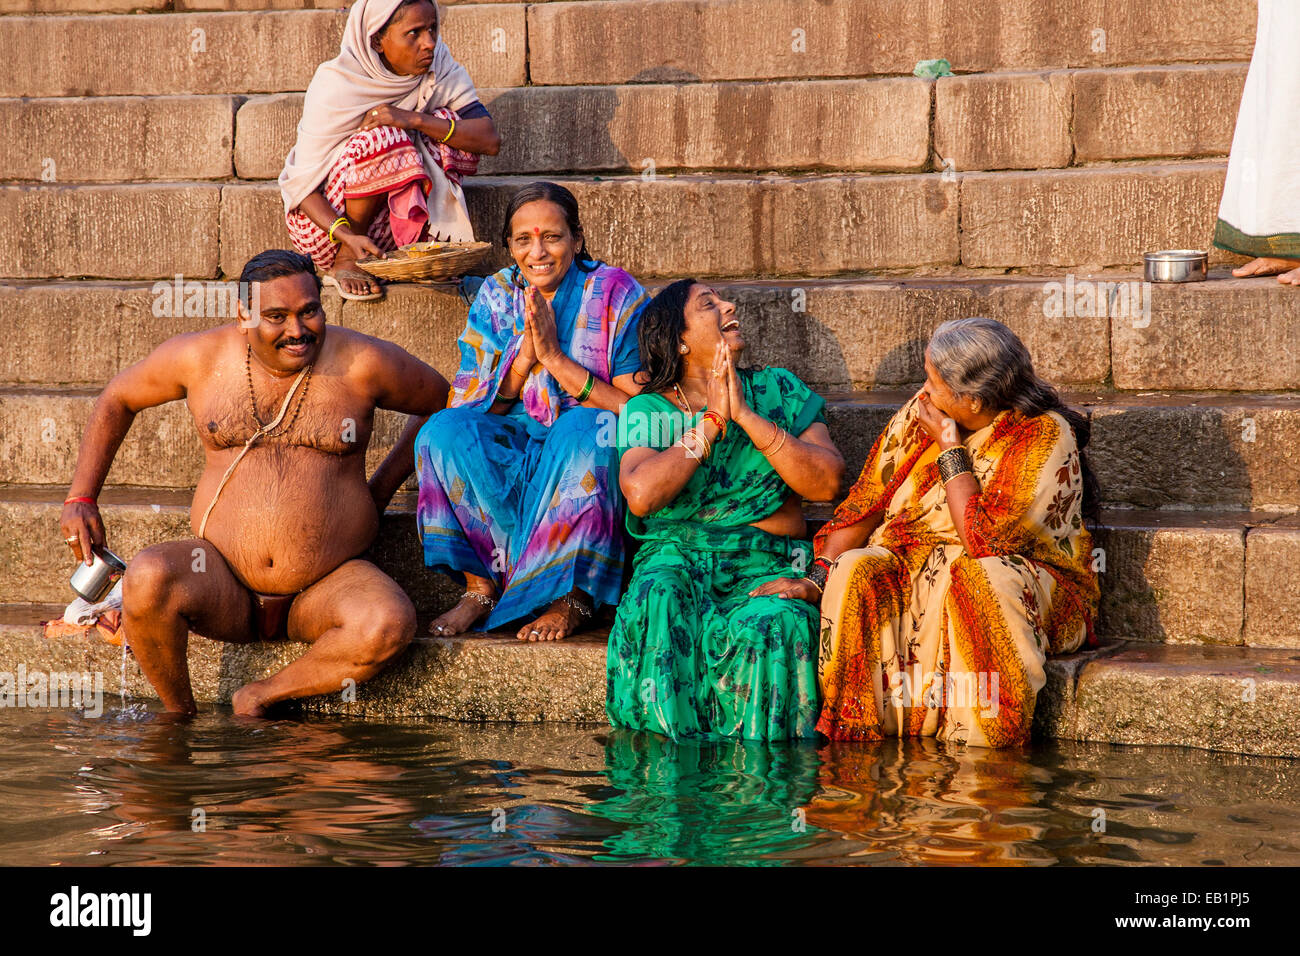 Hindu Pilgrims Praying and Bathing In The Holy River Ganges Stock Photo 75642397  Alamy